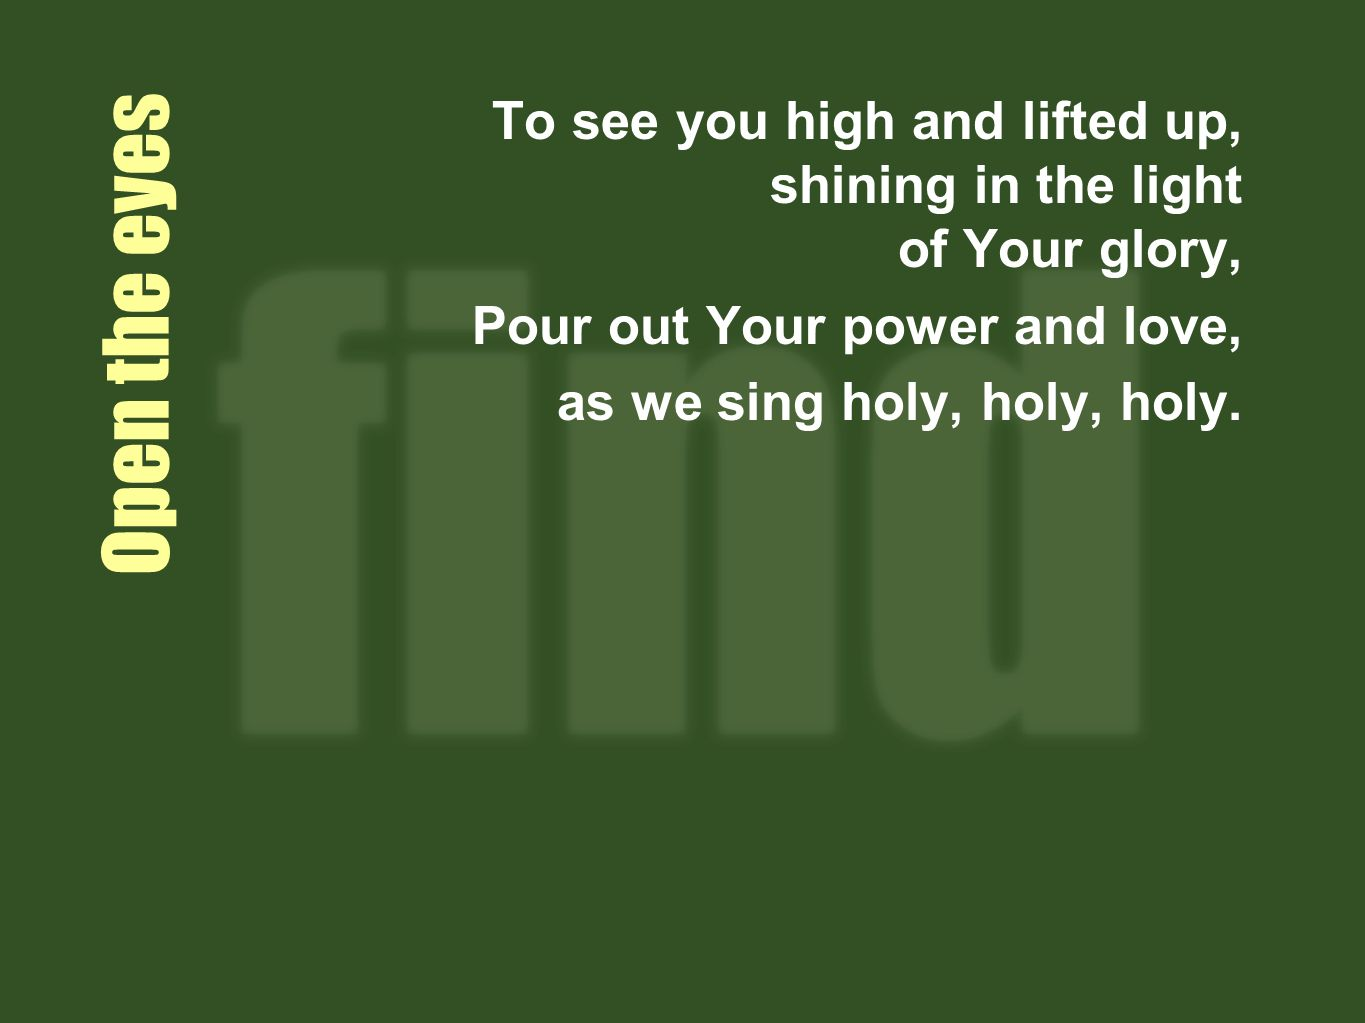 To see you high and lifted up, shining in the light of Your glory,